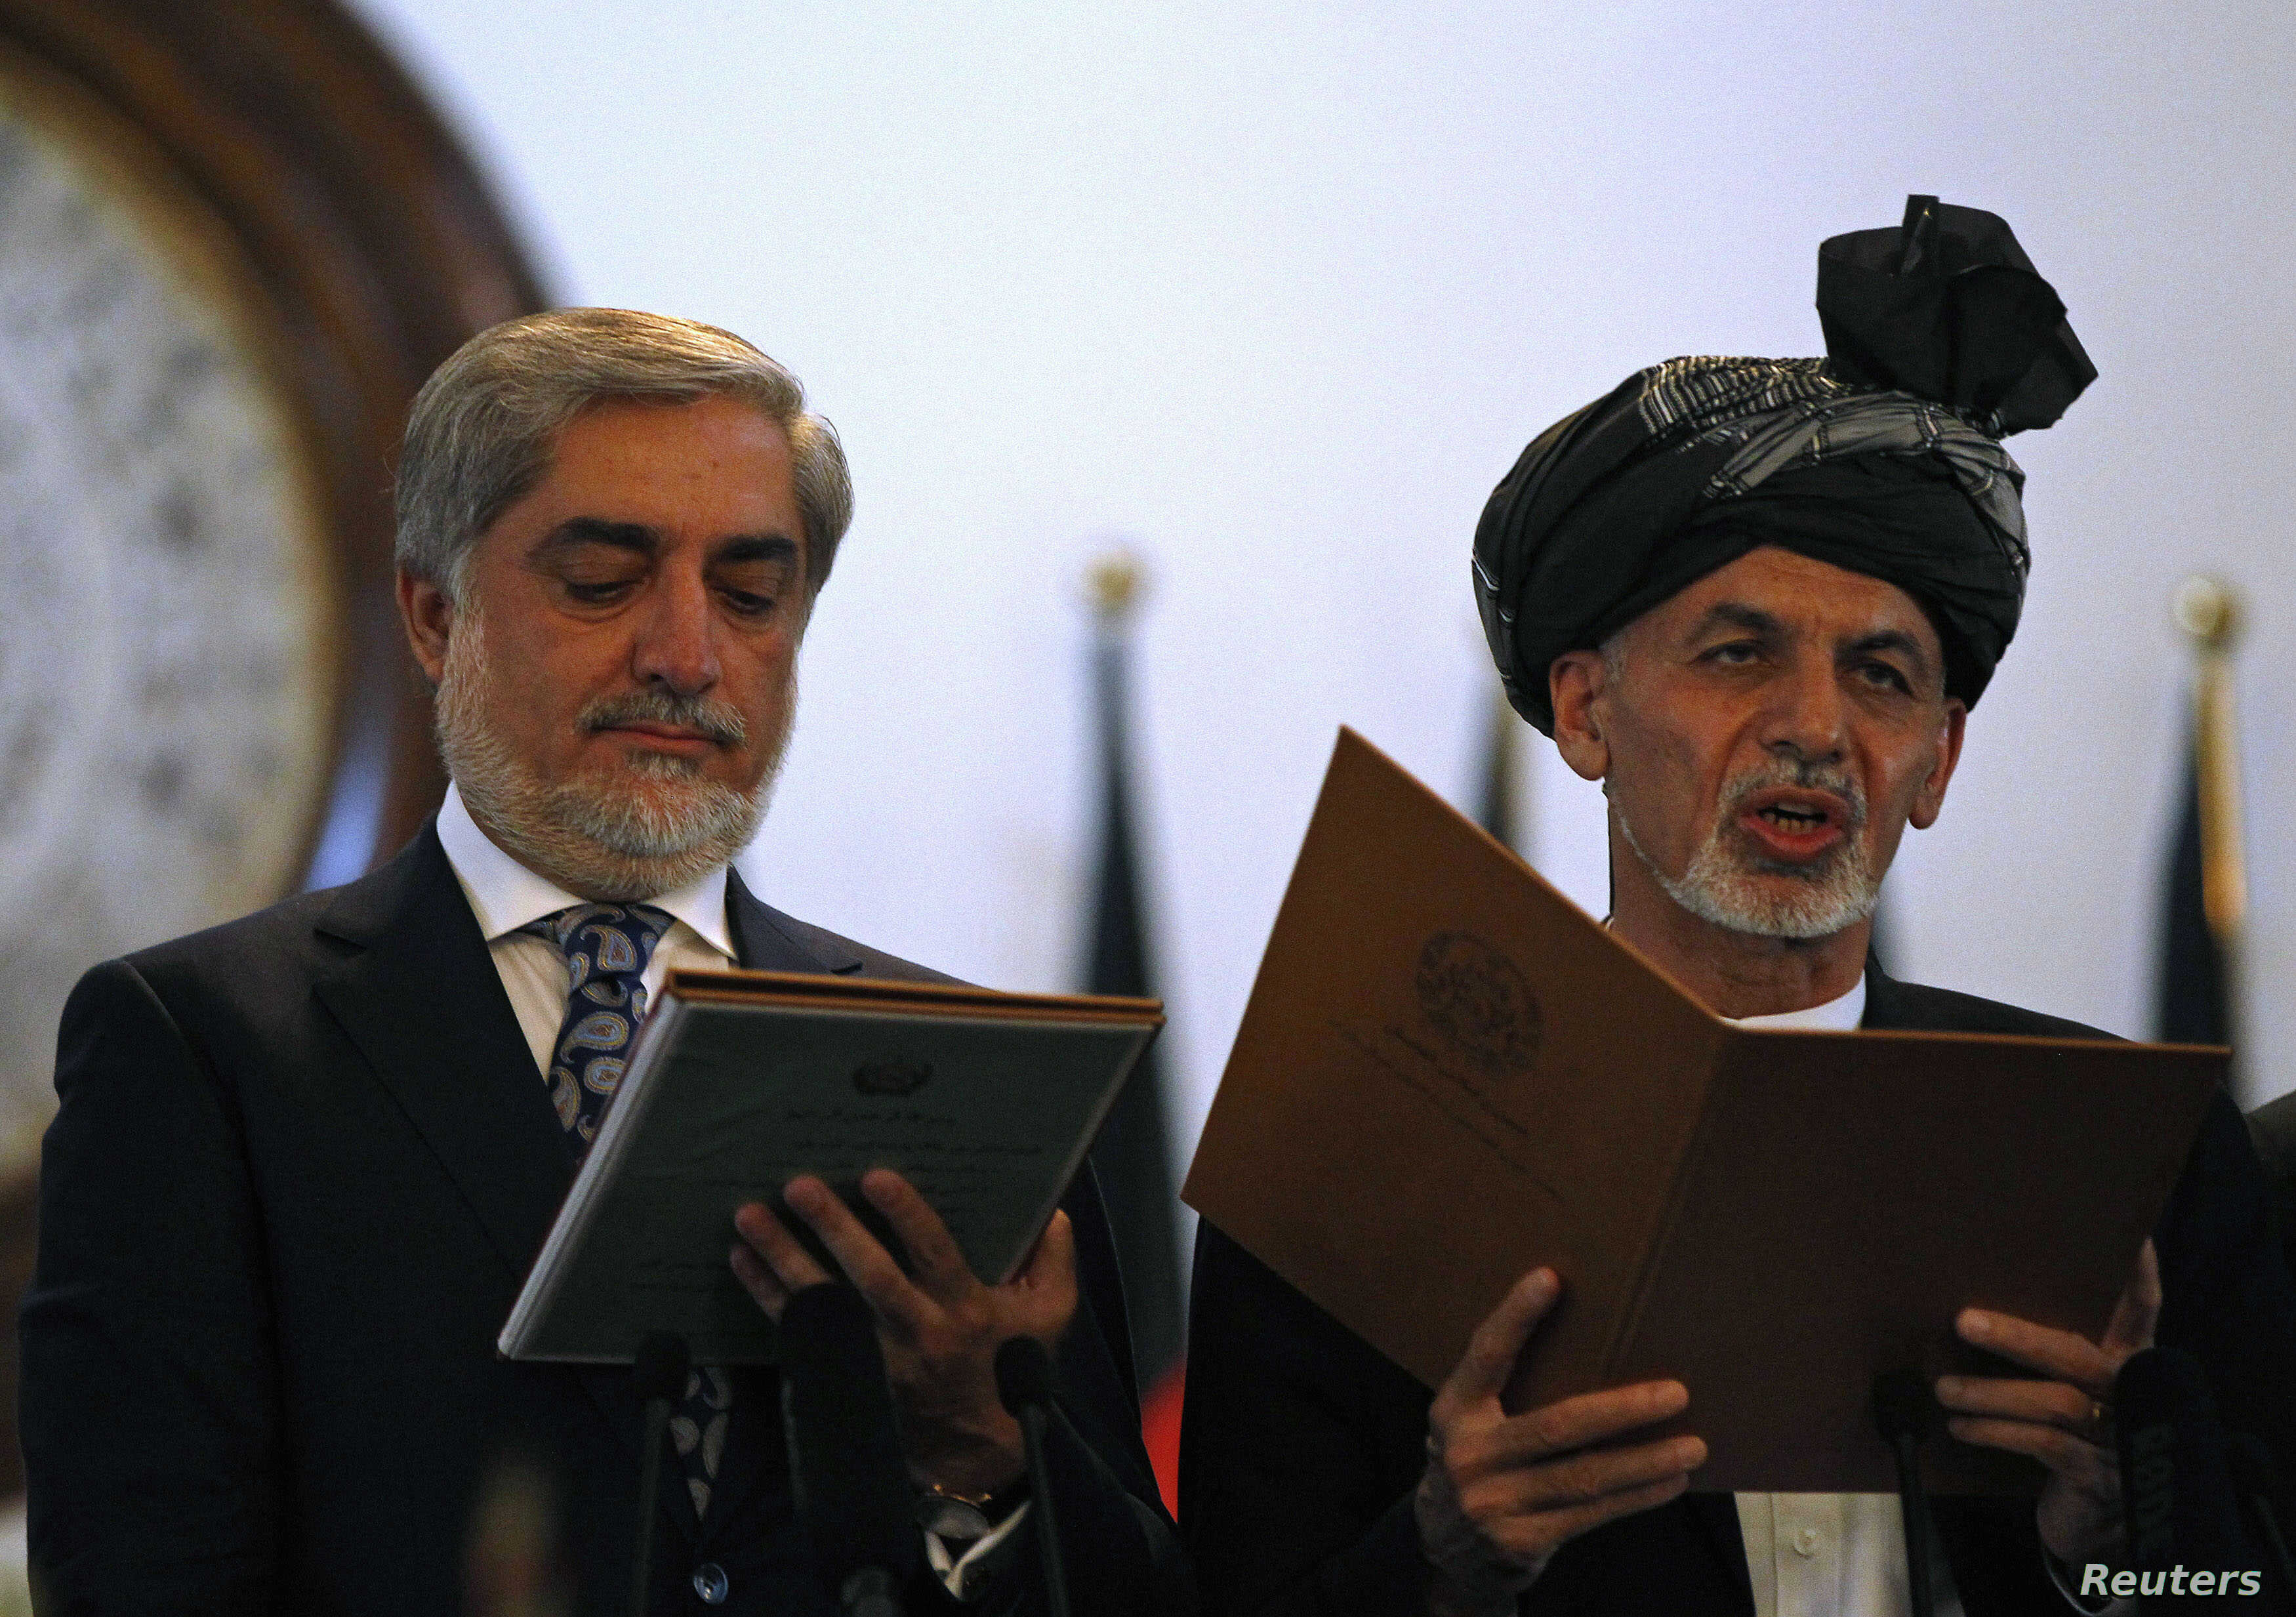 Afghanistan's new President Ashraf Ghani, right, and Afghanistan's Chief Executive Abdullah Abdullah take the oath during their inauguration in Kabul, Sept. 29, 2014.